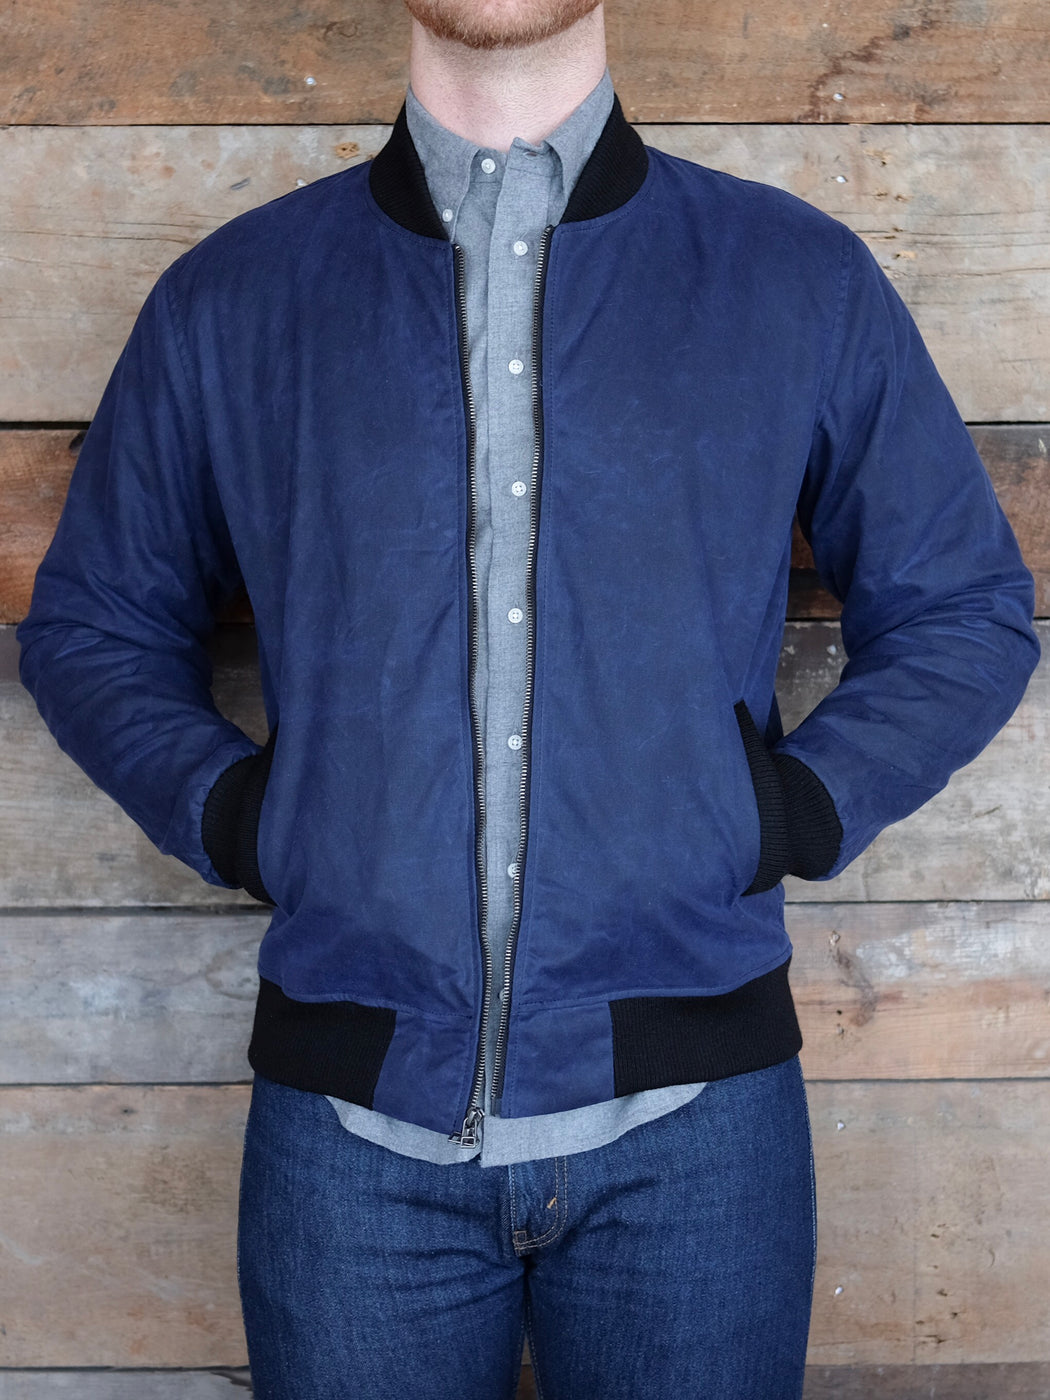 Stadium Jacket, Outerwear, 3sixteen - Felding Co